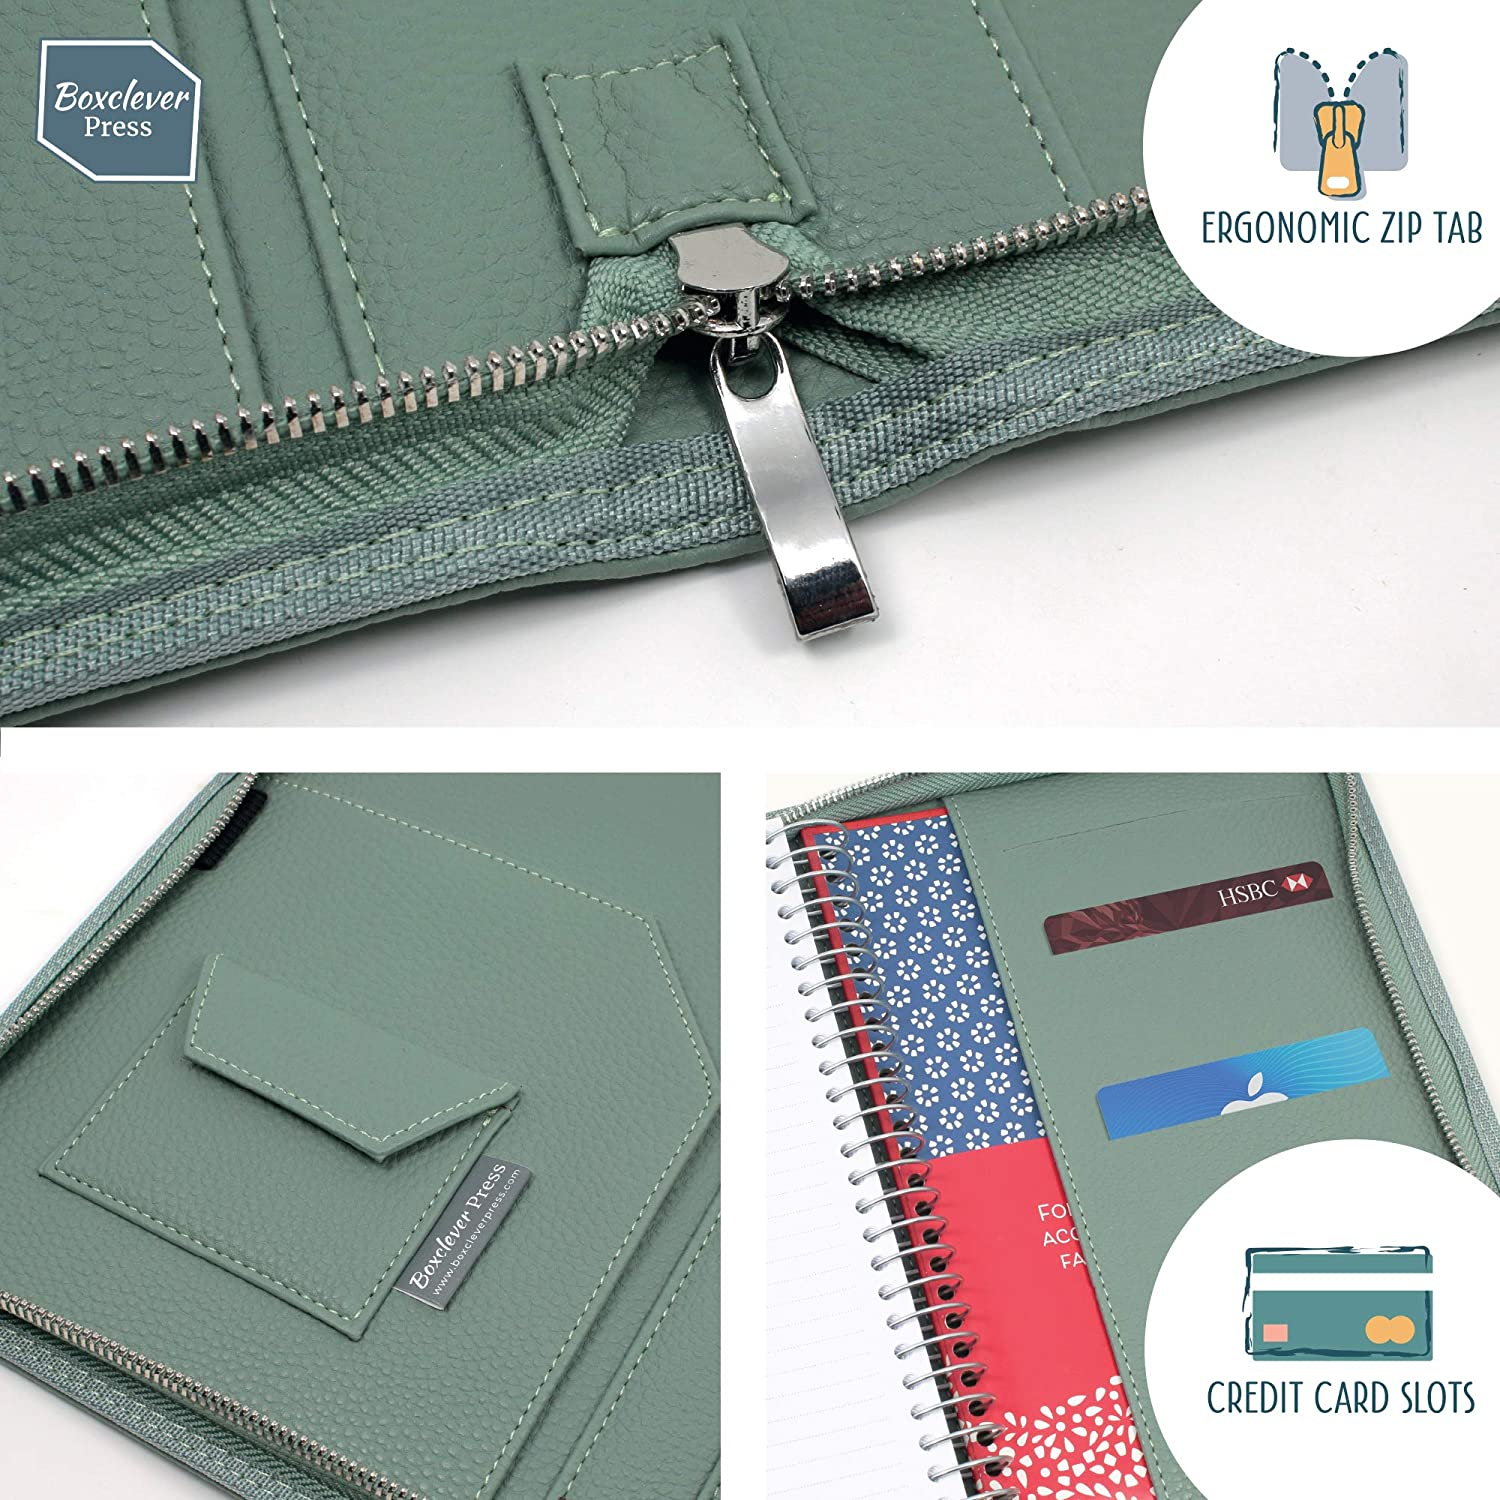 Boxclever Press Family Life Book. Agenda 2019-2020 con Funda ...